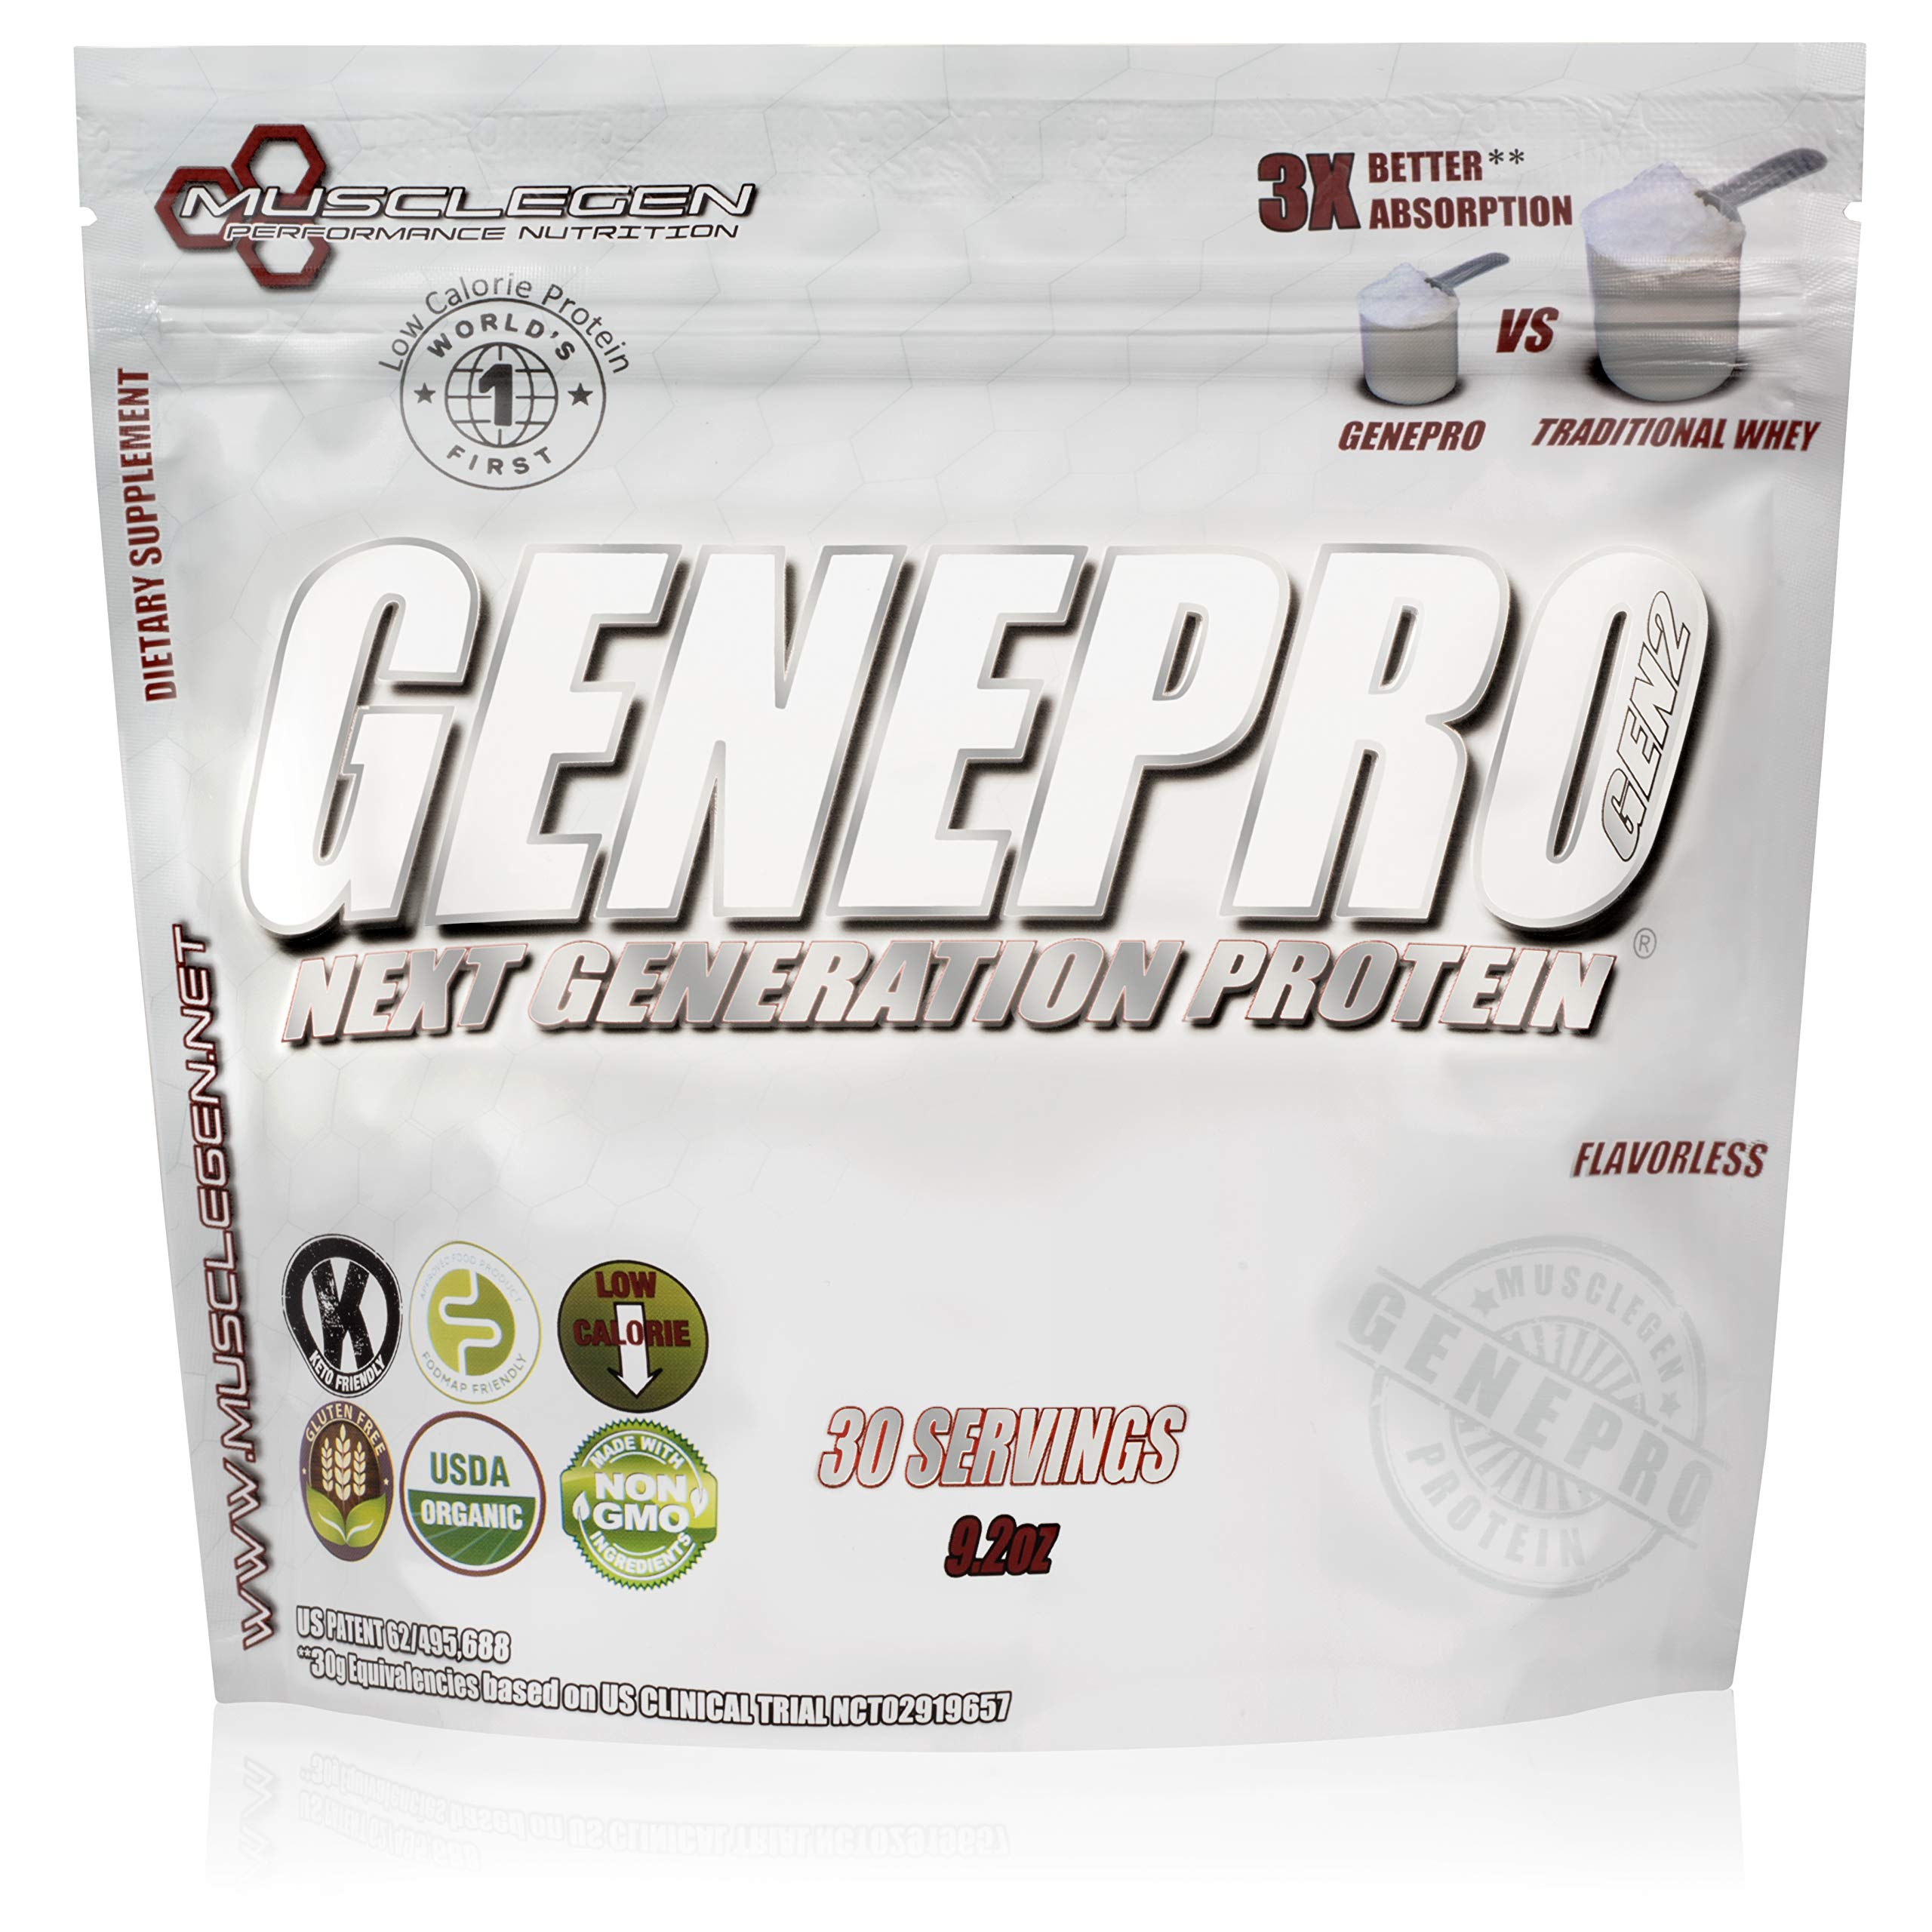 GENEPRO Medical Grade Protein, 30 Servings by Musclegen Research - Premium Protein for Absorption, Muscle Growth & Mix-Abilty. Gluten-Free, No Sugar, Flavorless and Mixes with Any Drink by Musclegen Research